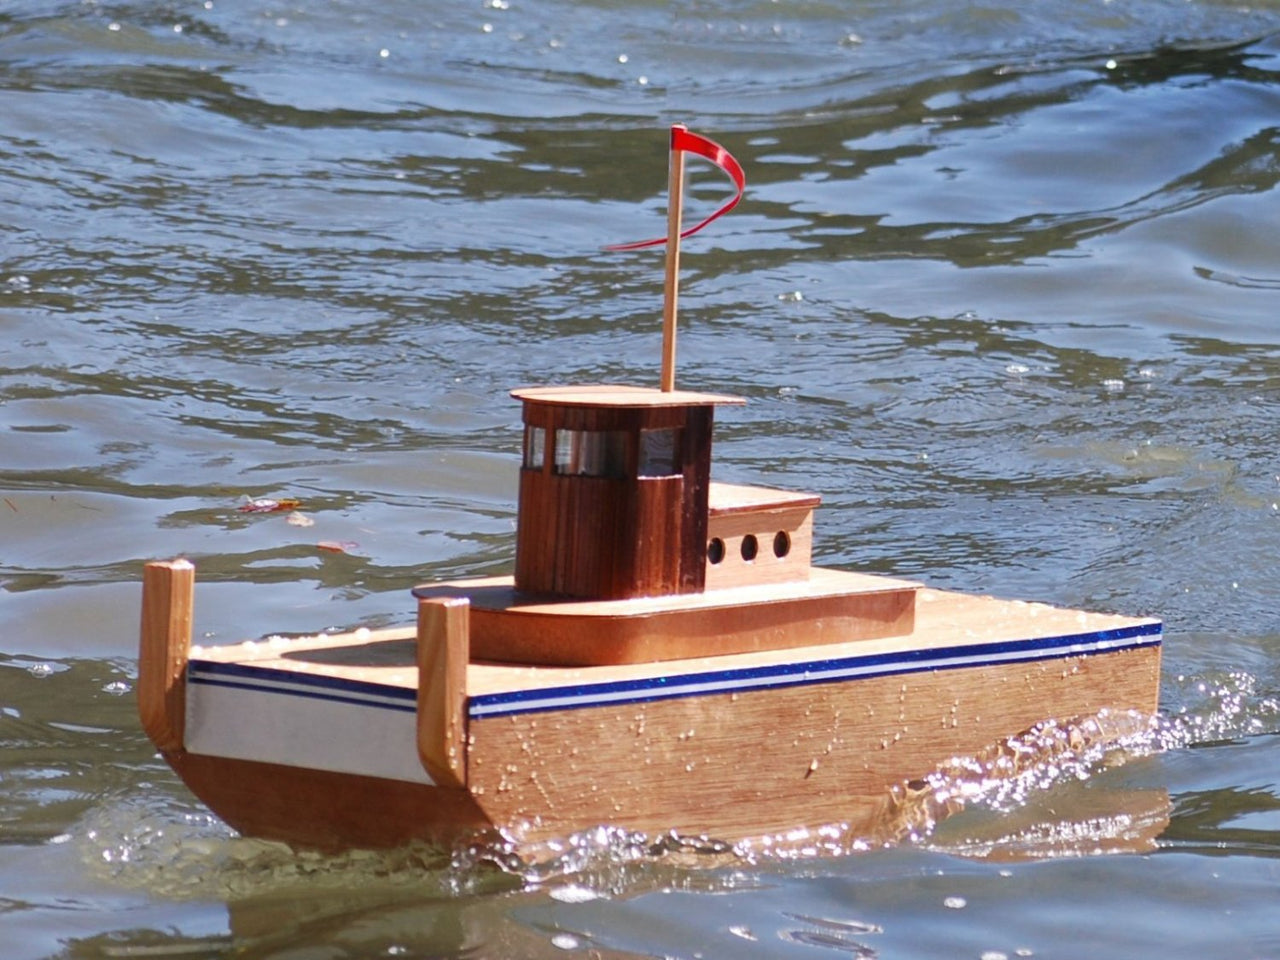 RC Tugboat: Remote Control Boat Speeding through the water